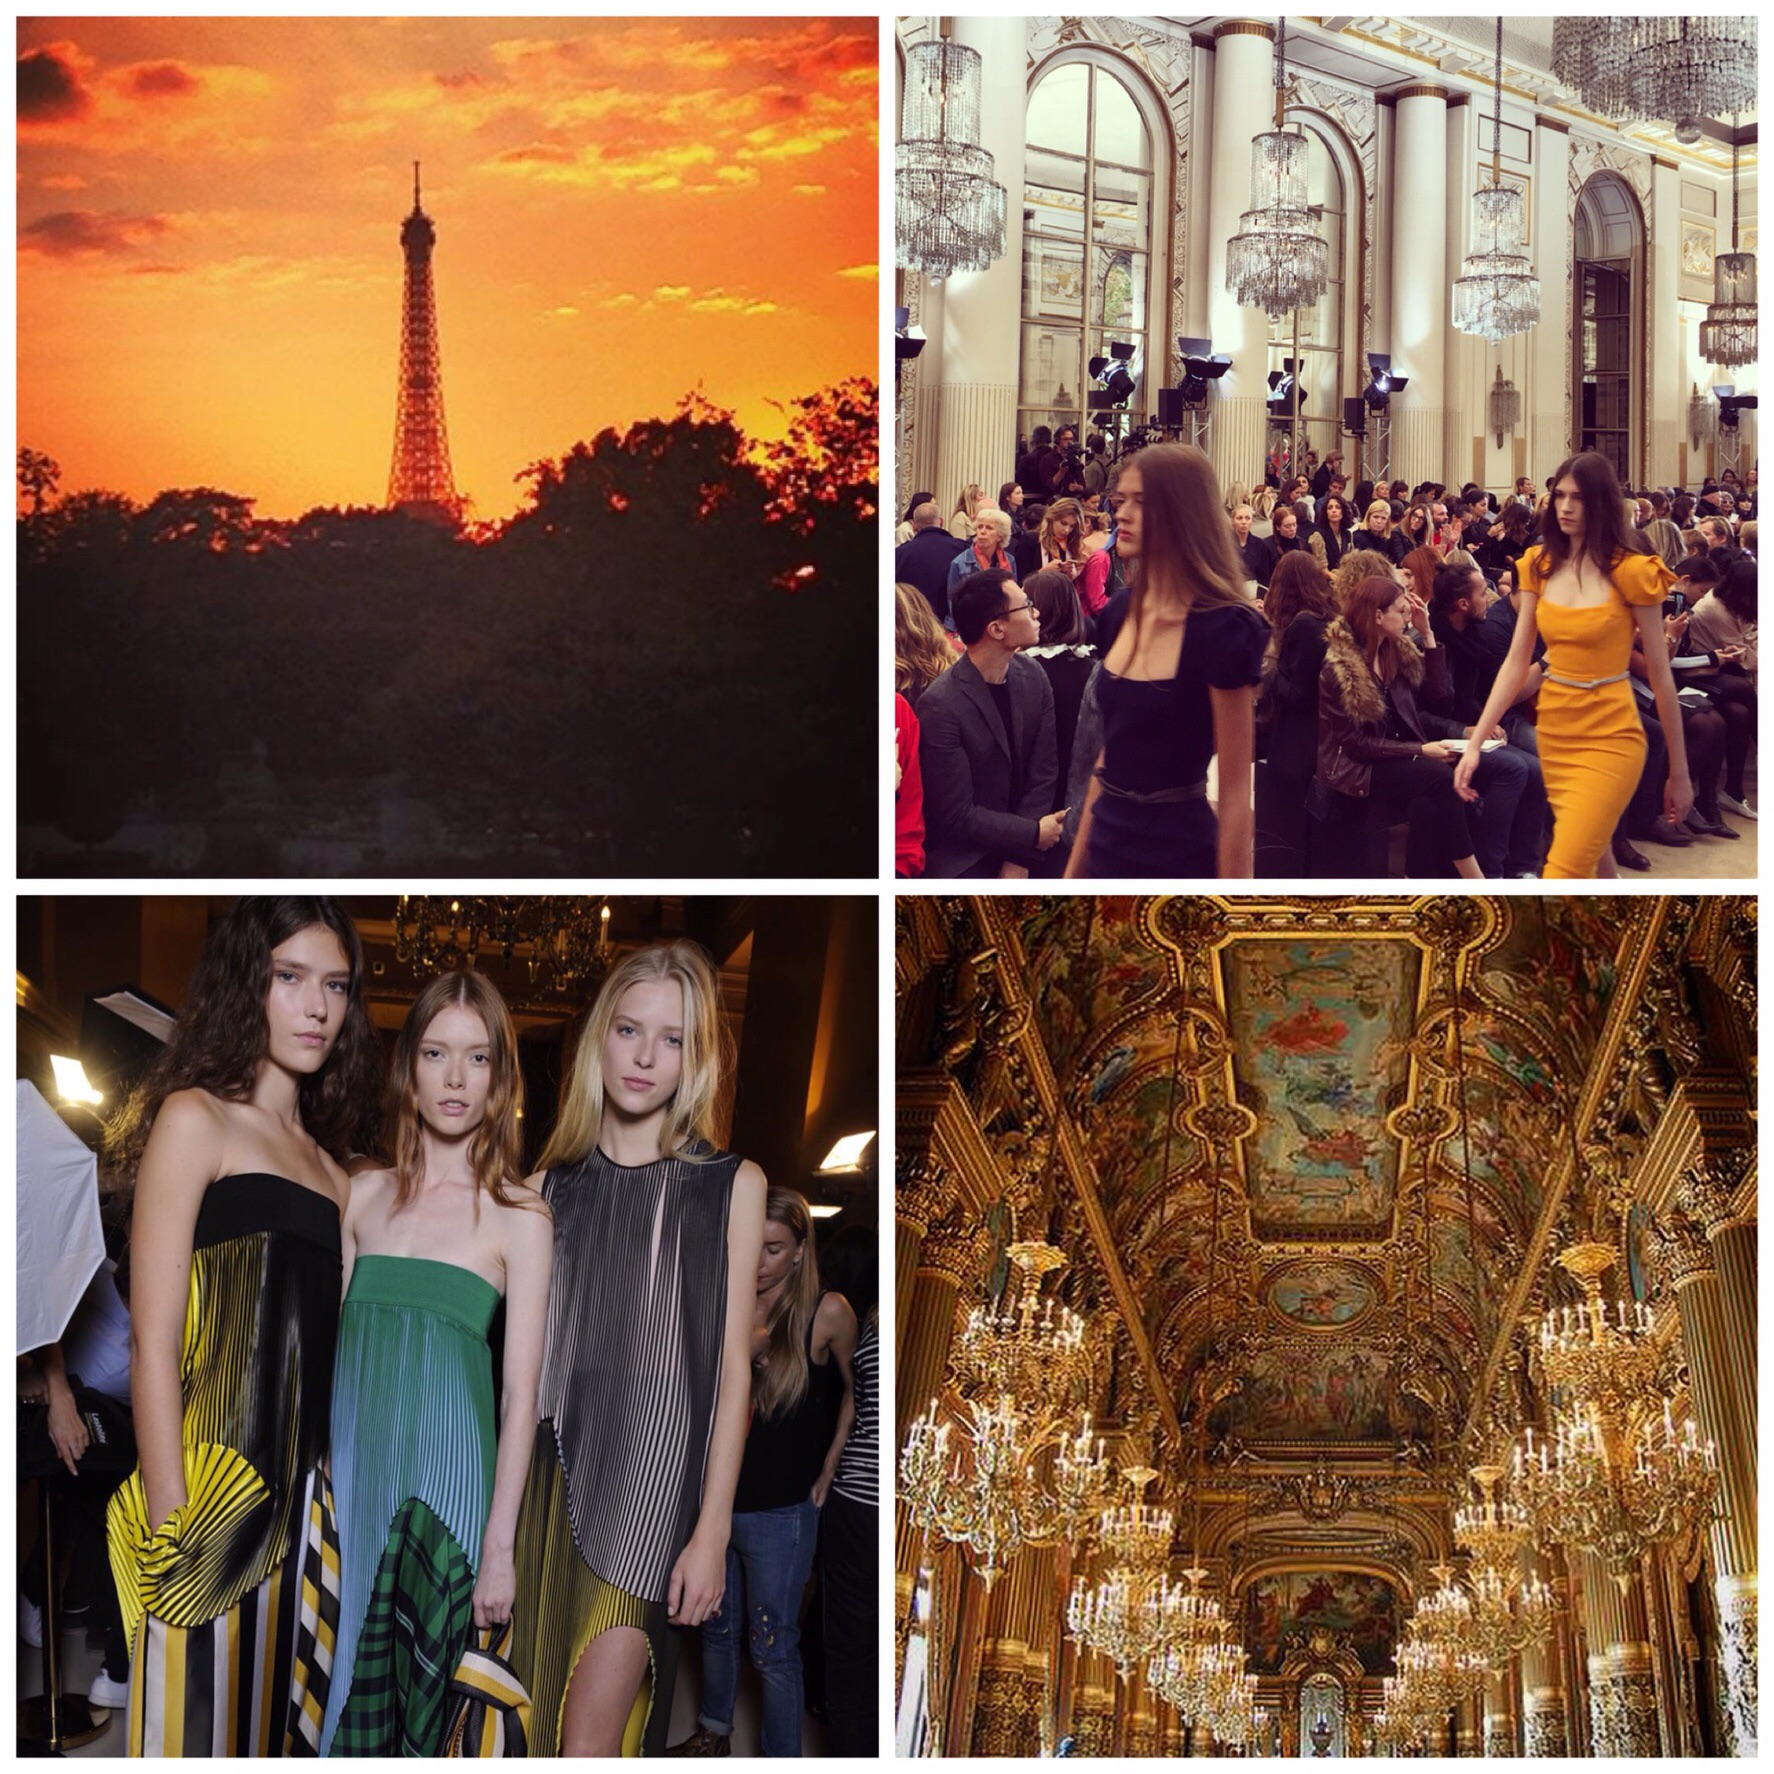 Sunset stroll, Roland Mouret show celebrates 10 years of his iconic Galaxy Dress, Stripes at Stella McCartney, Palais Garnier.